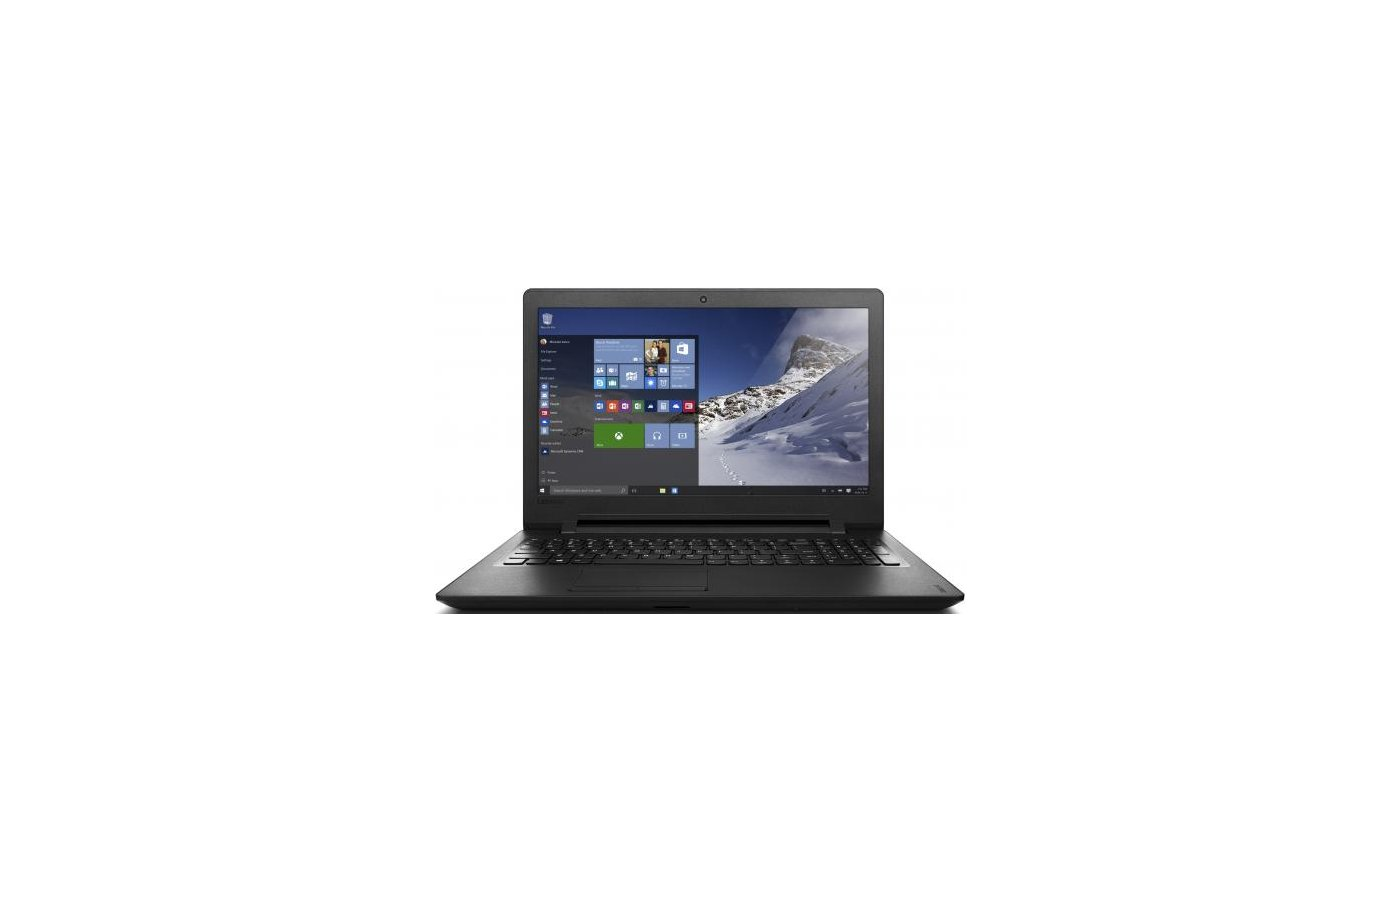 Ноутбук Lenovo IdeaPad 110-15IBR /80T7003TRK/ intel N3060/4Gb/500Gb/15.6/WiFi/Win10